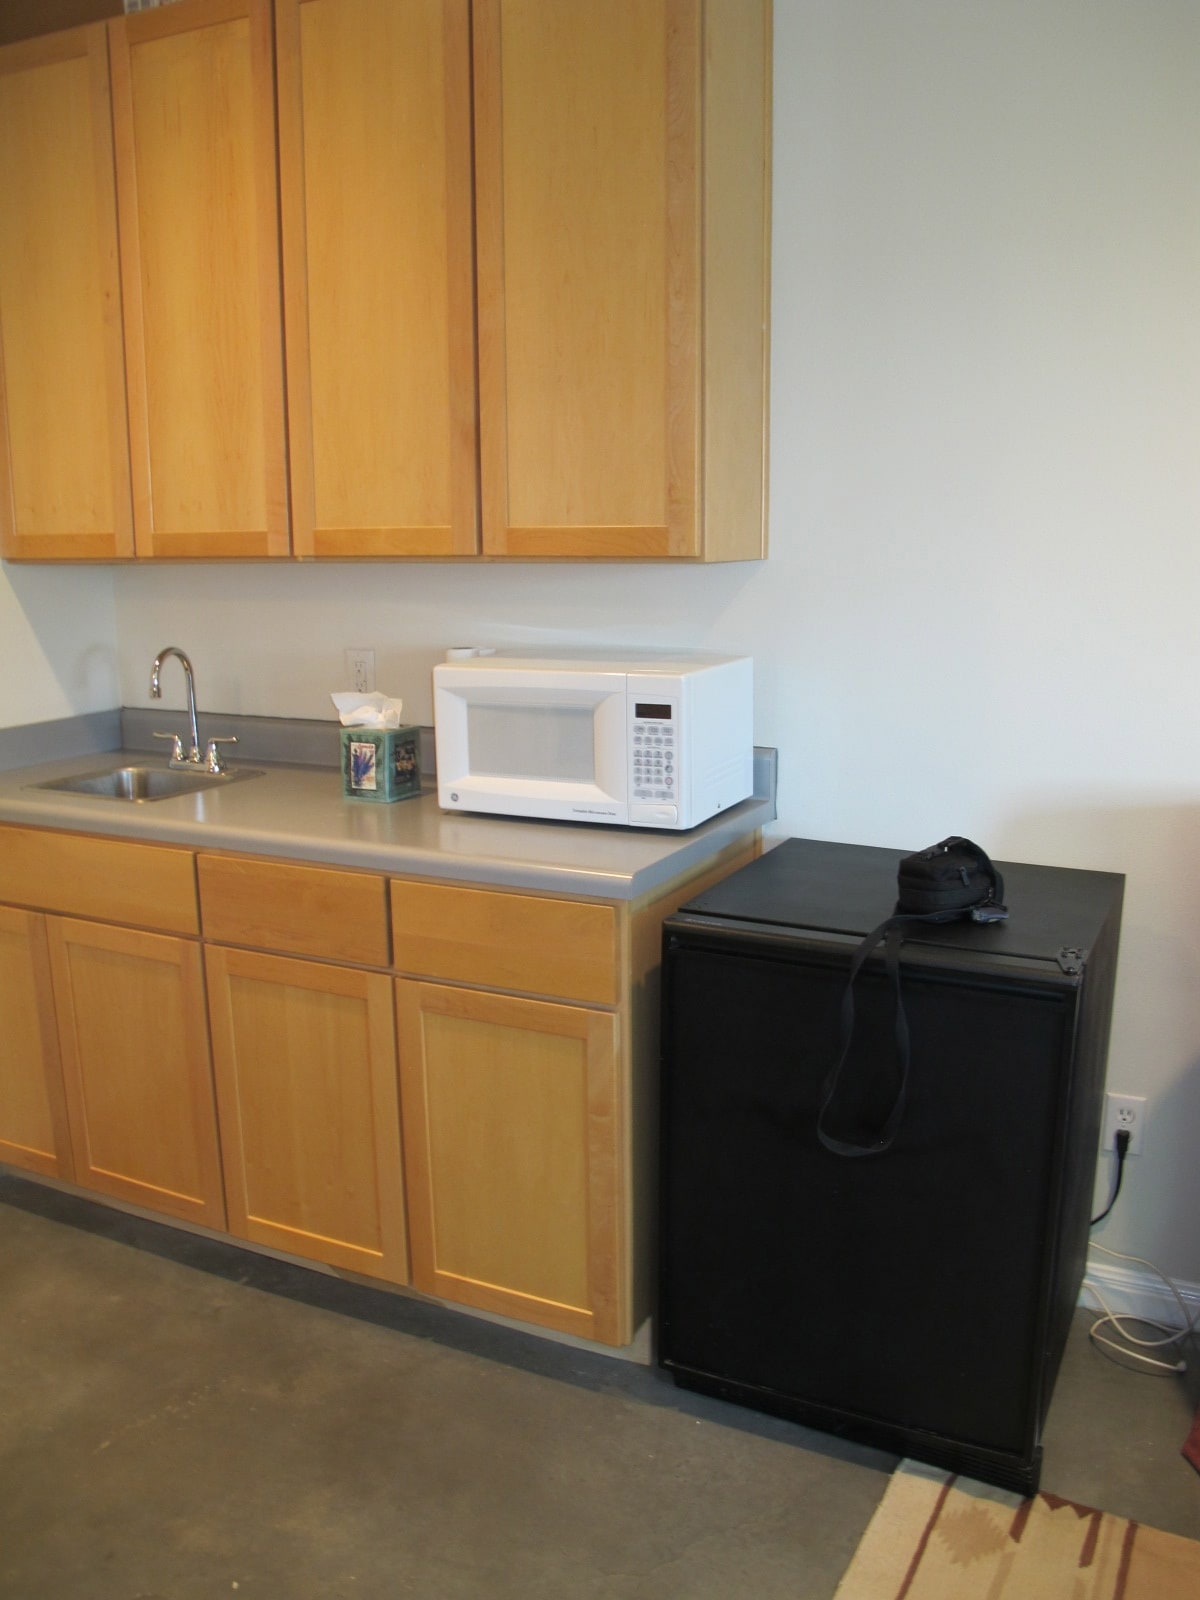 Kitchenette with microwave and small refrigerator